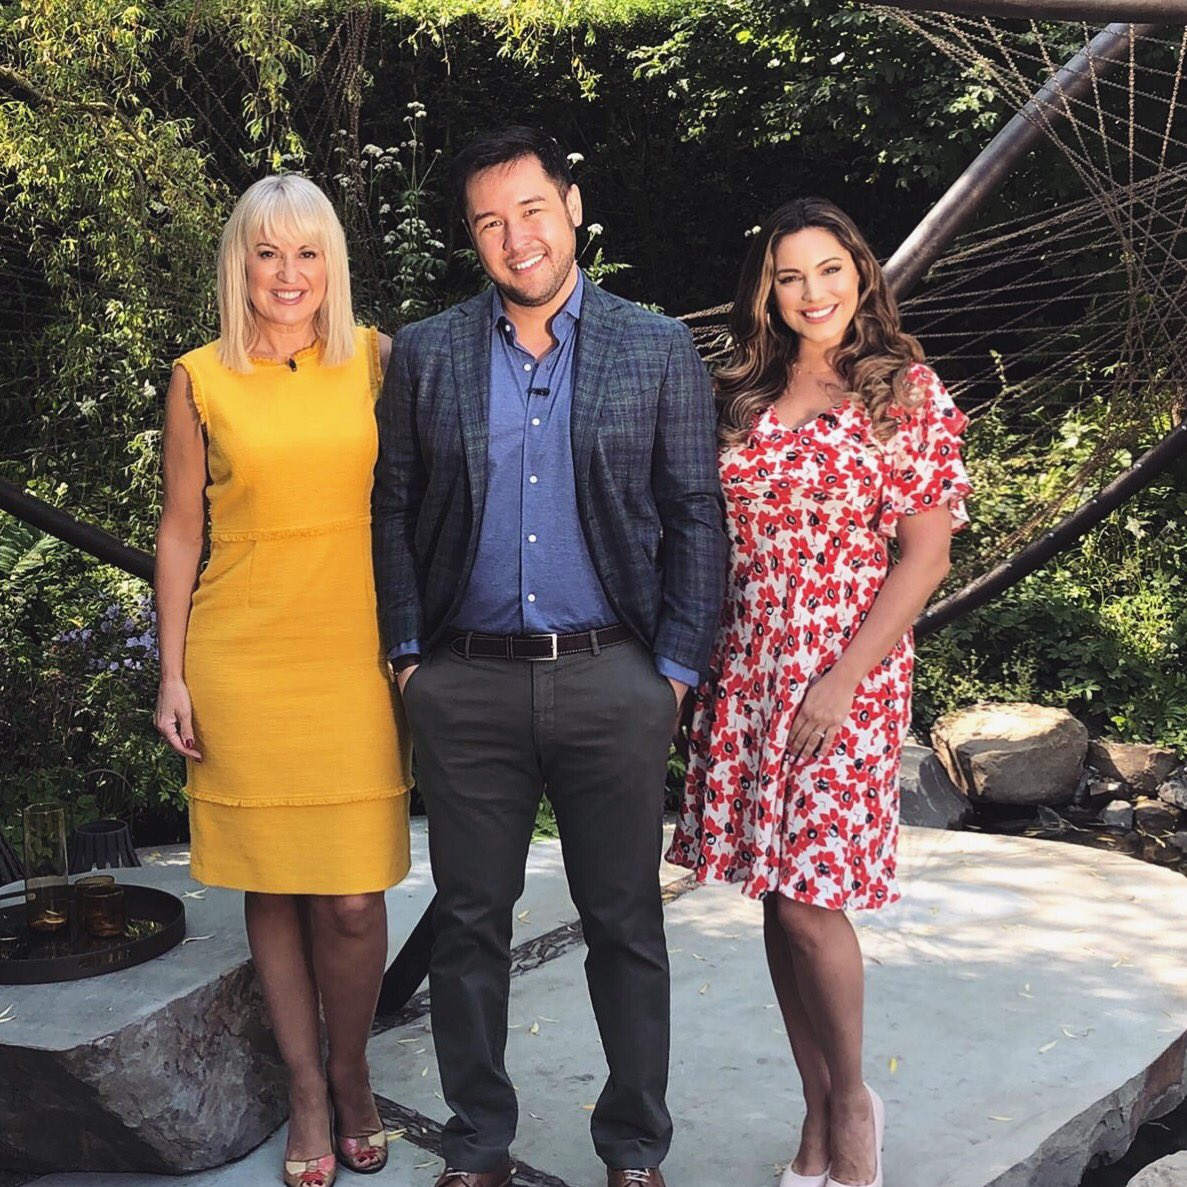 Catch me on today's @The_RHS Chelsea Flower Show Coverage for the BBC with @Nicki_Chapman @Botanygeek ????????‍???????? https://t.co/fXB96nFffn